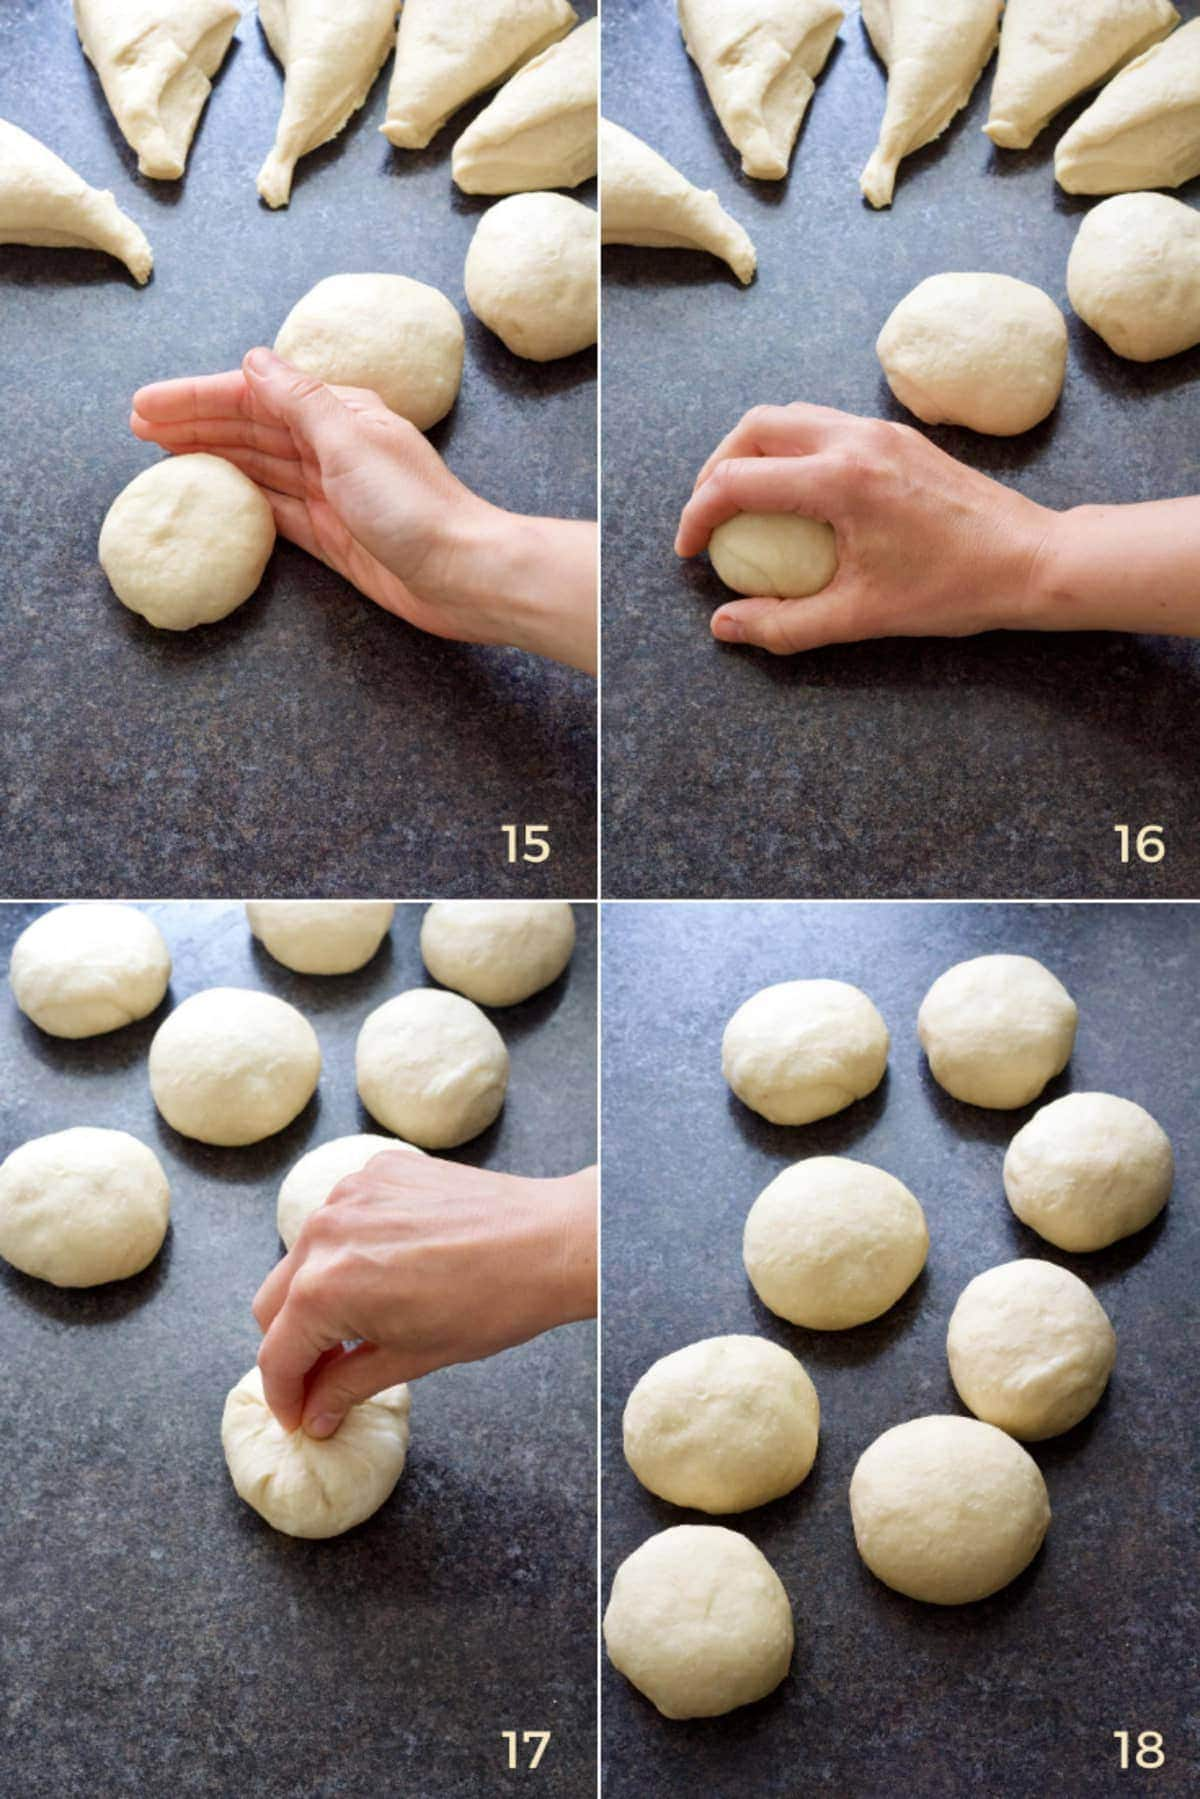 Shaping bread rolls.